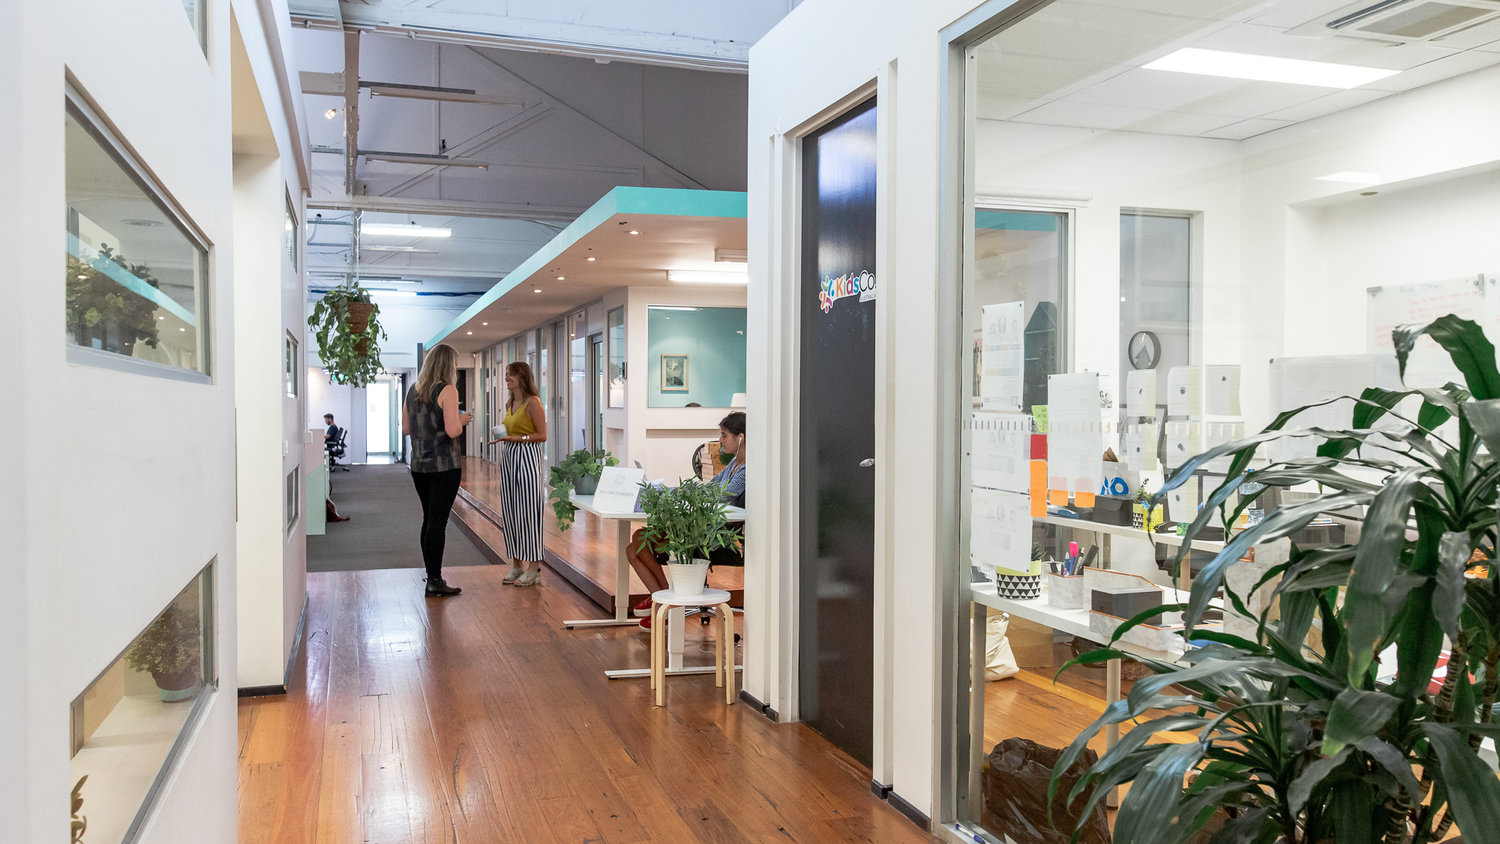 coworking space with white walls